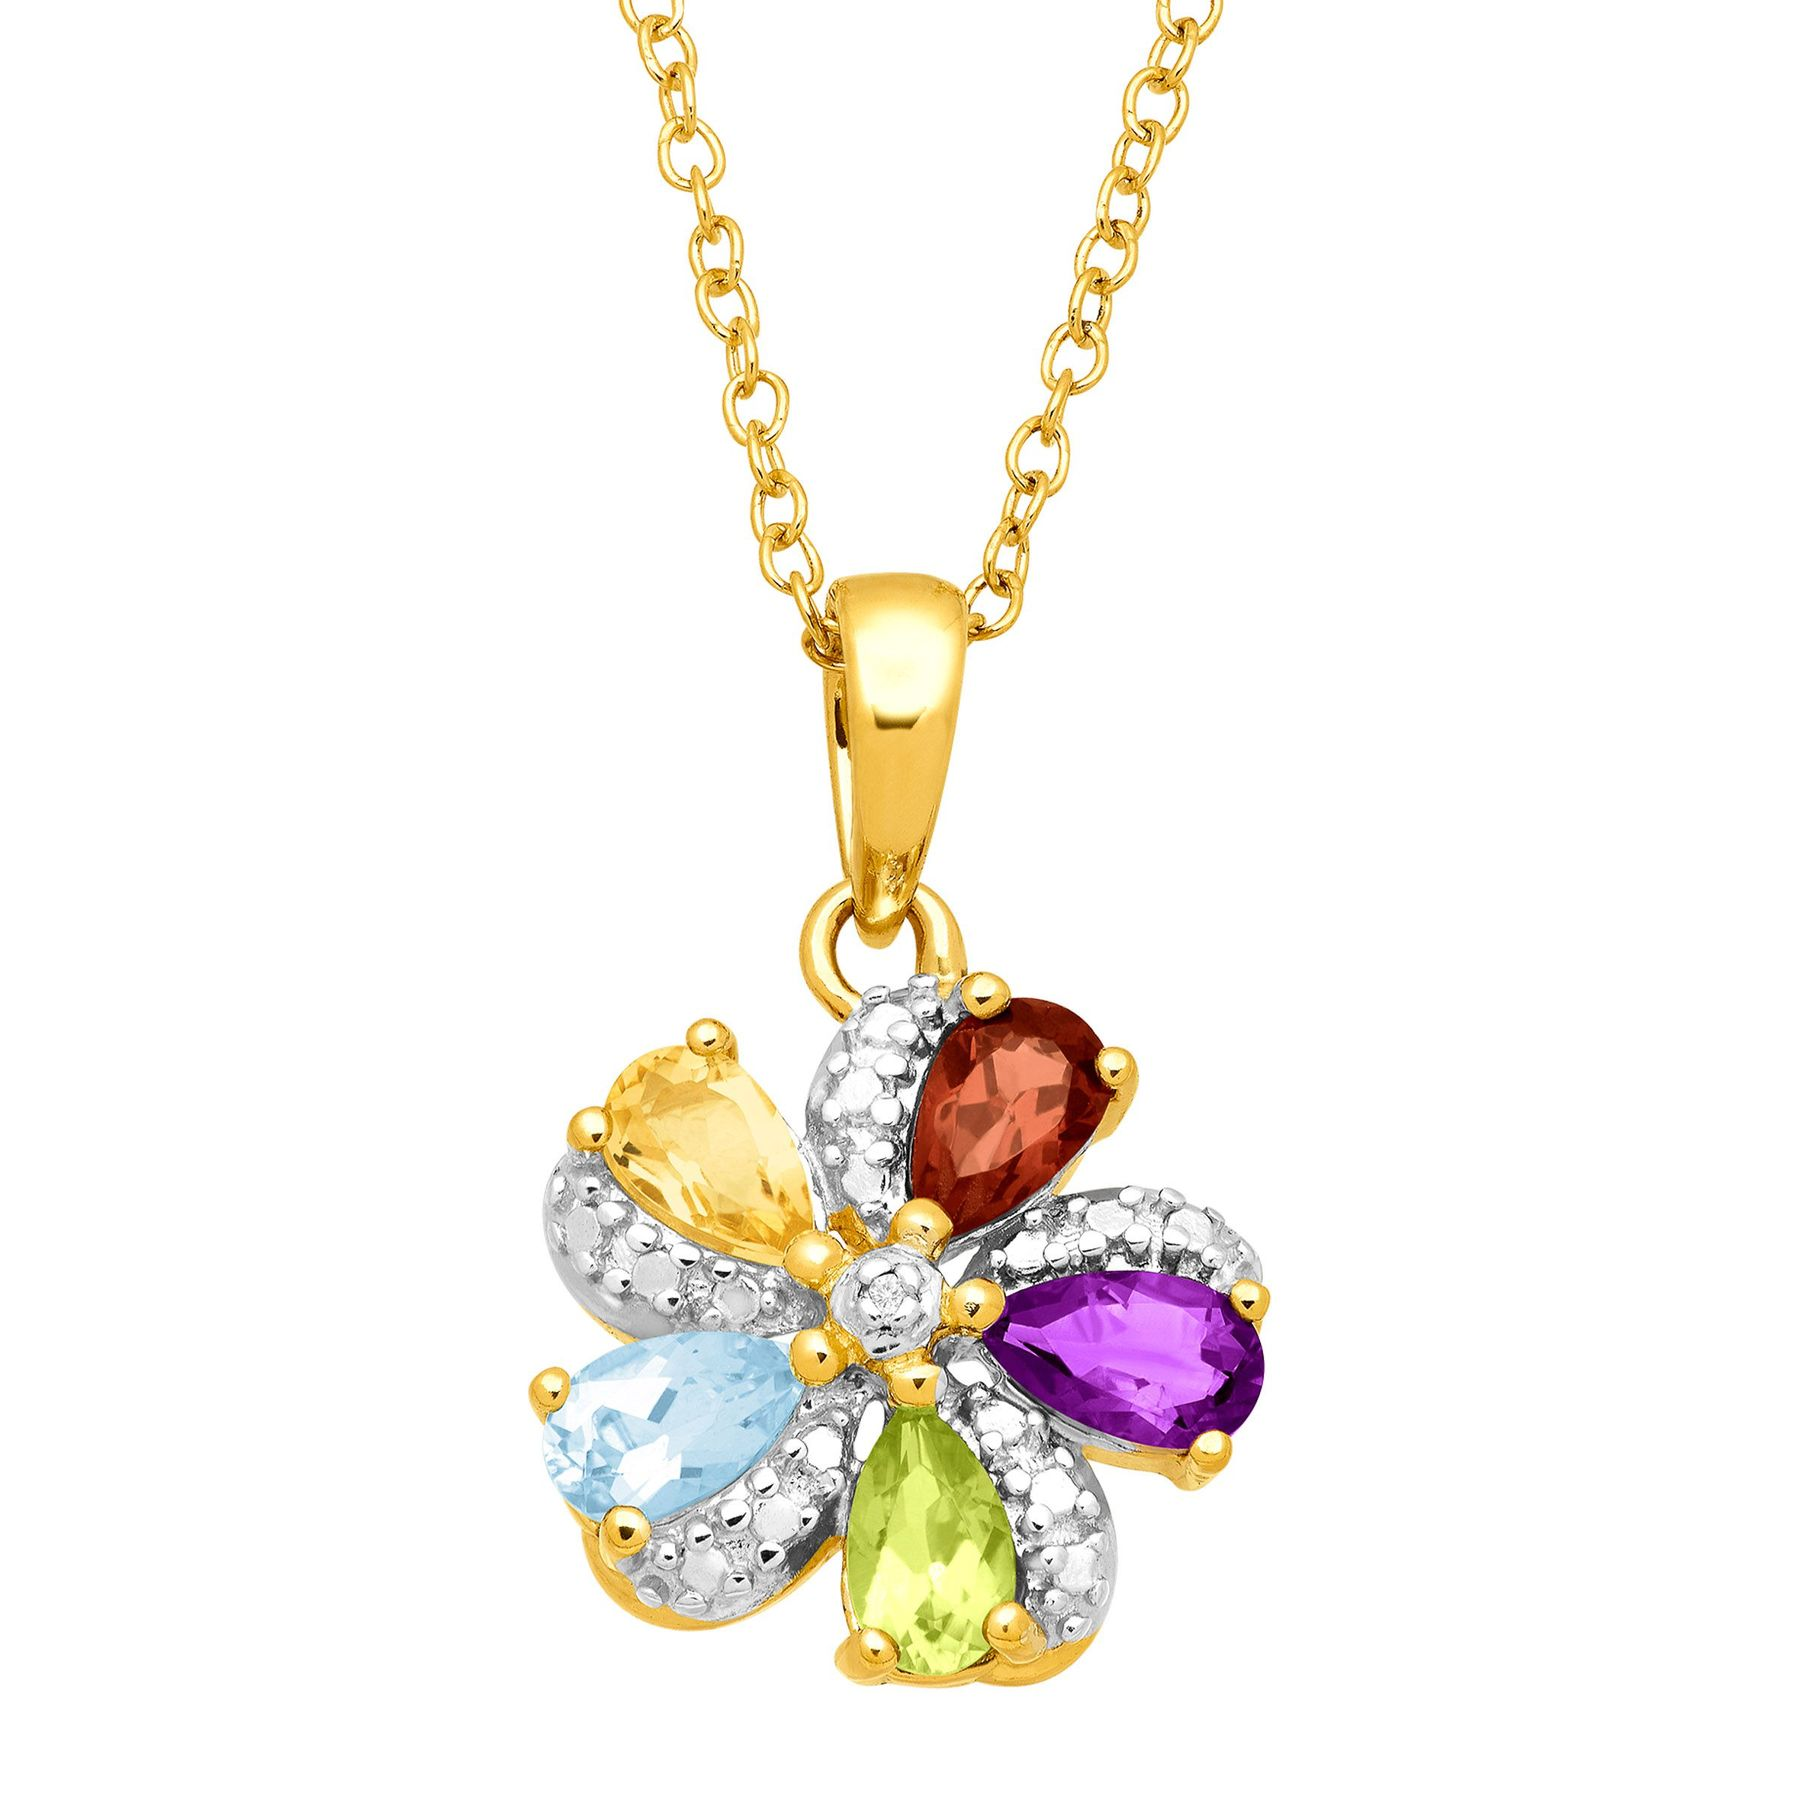 flower necklace gripoix vintage pendant chanel products gold ruby collectible